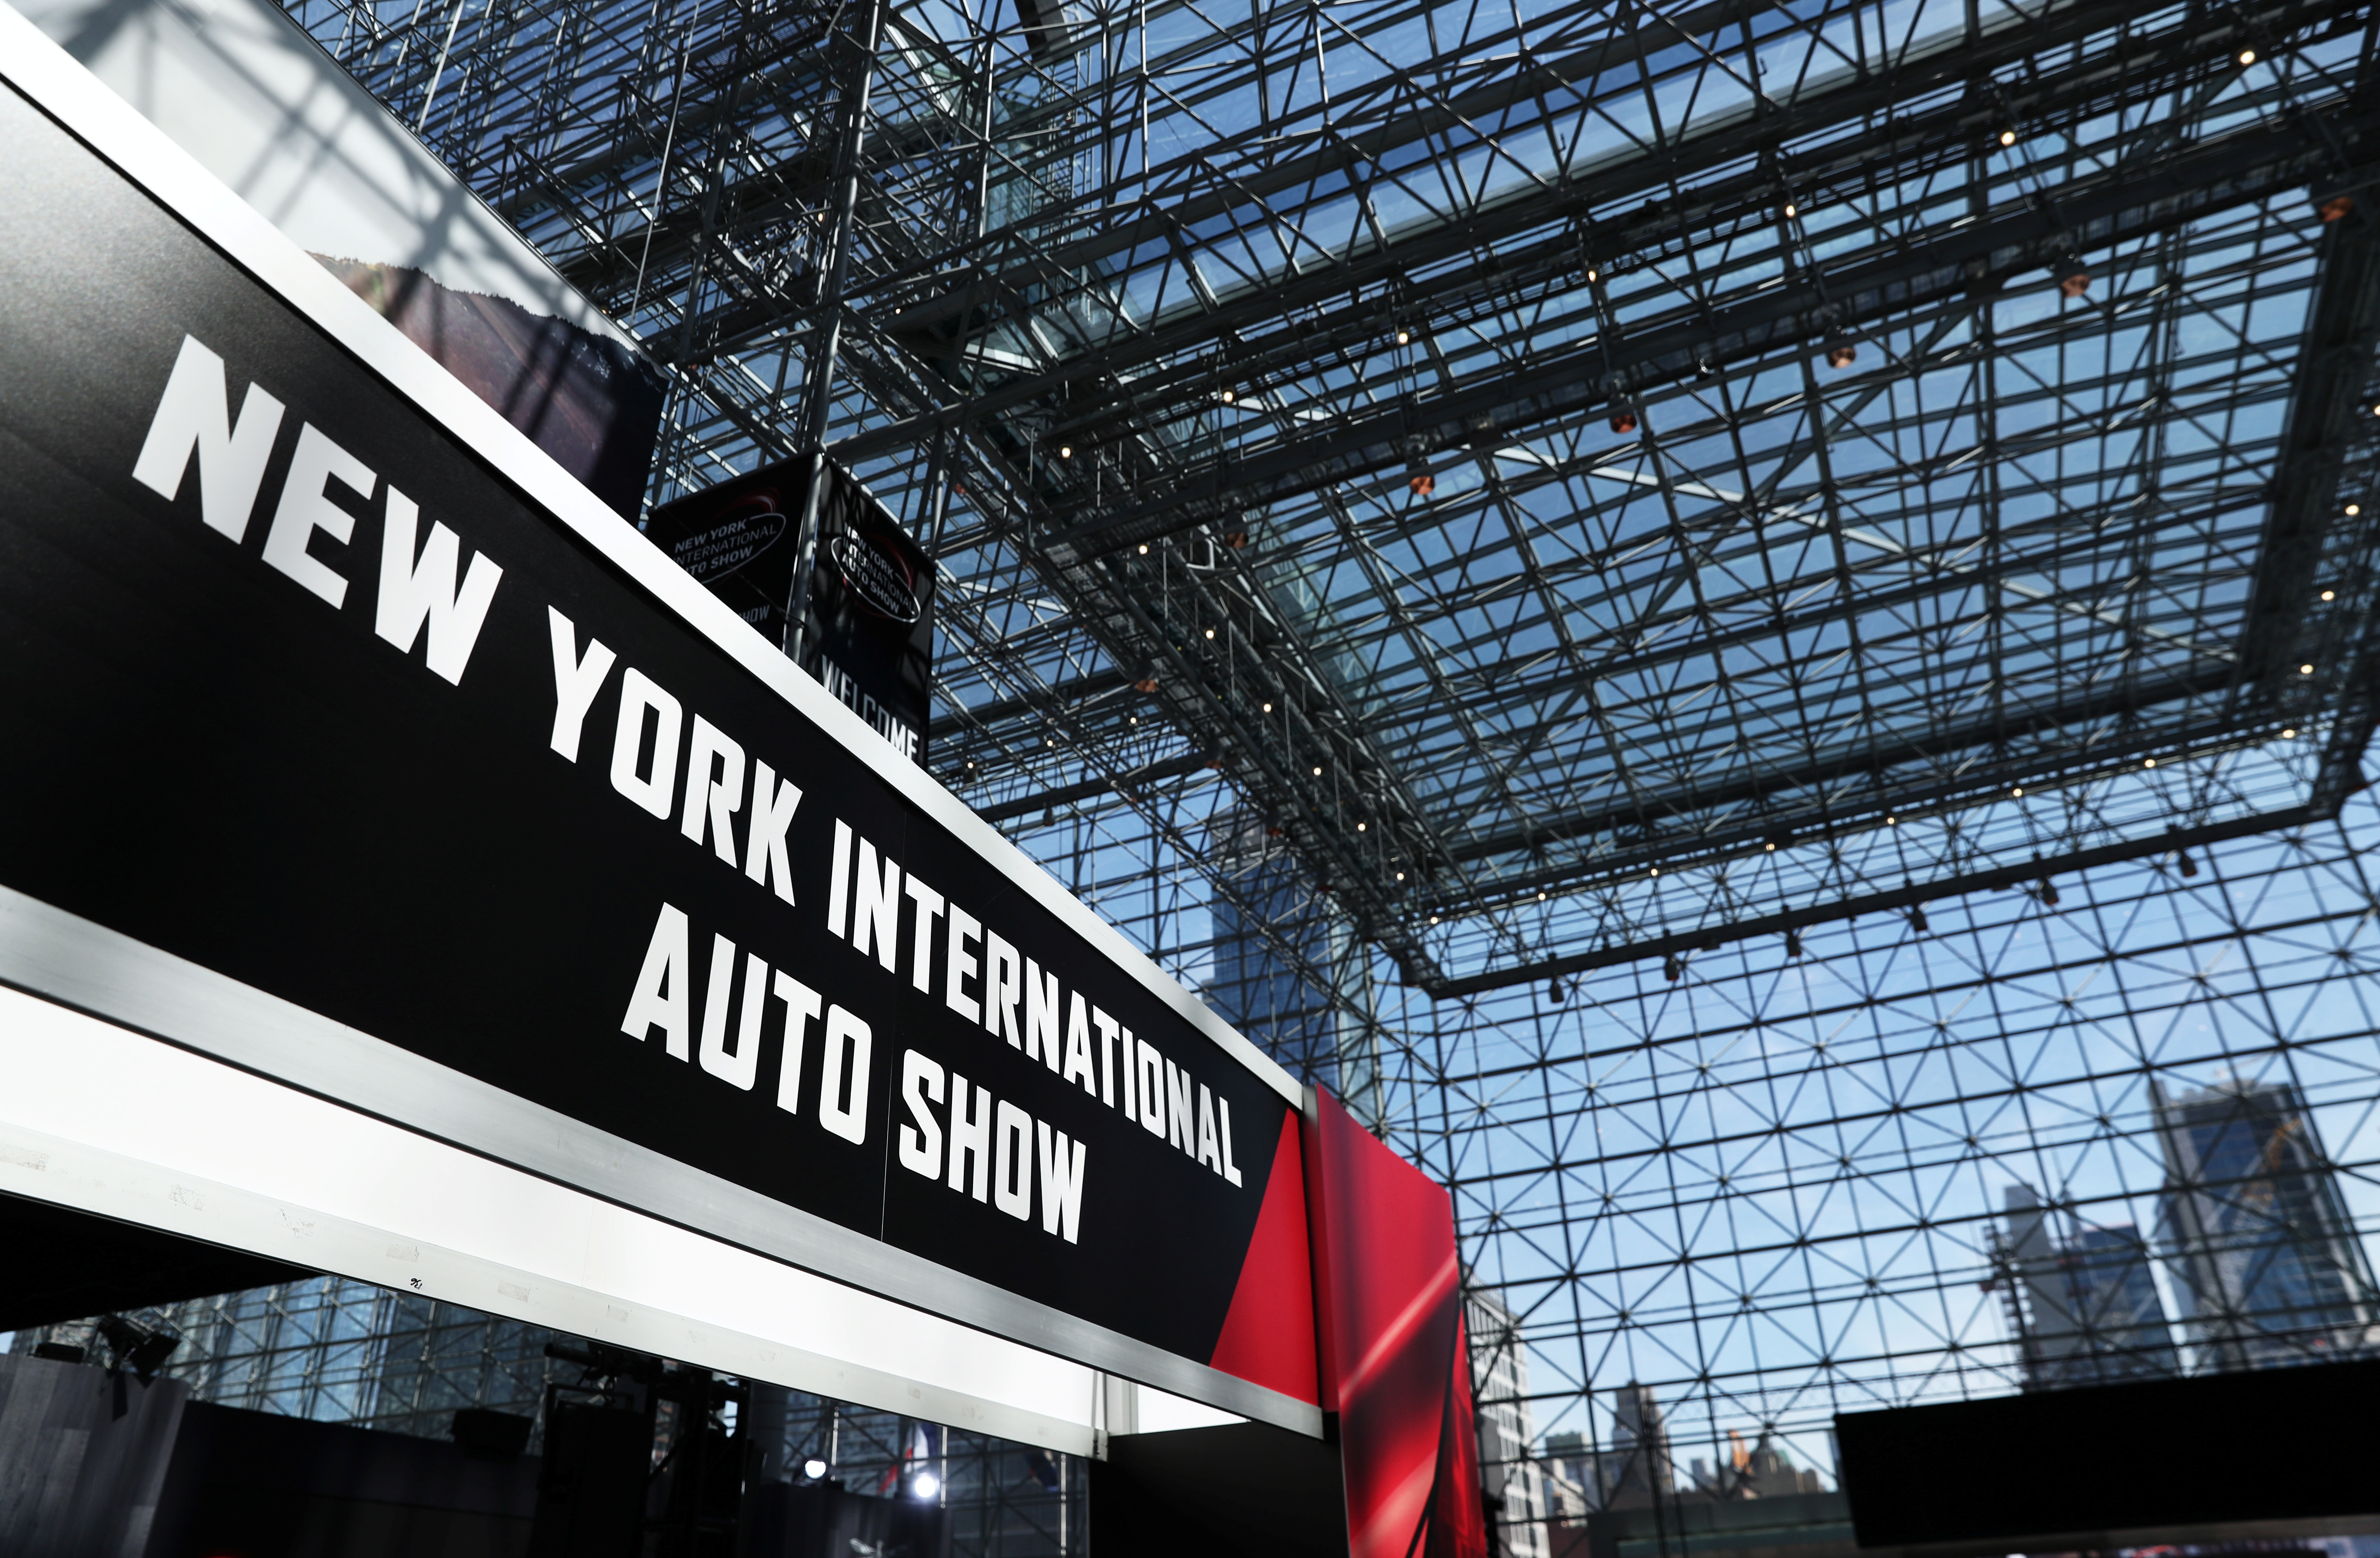 A sign for the auto show is pictured at the 2019 New York International Auto Show in New York City, New York, U.S, April 17, 2019. REUTERS/Shannon Stapleton